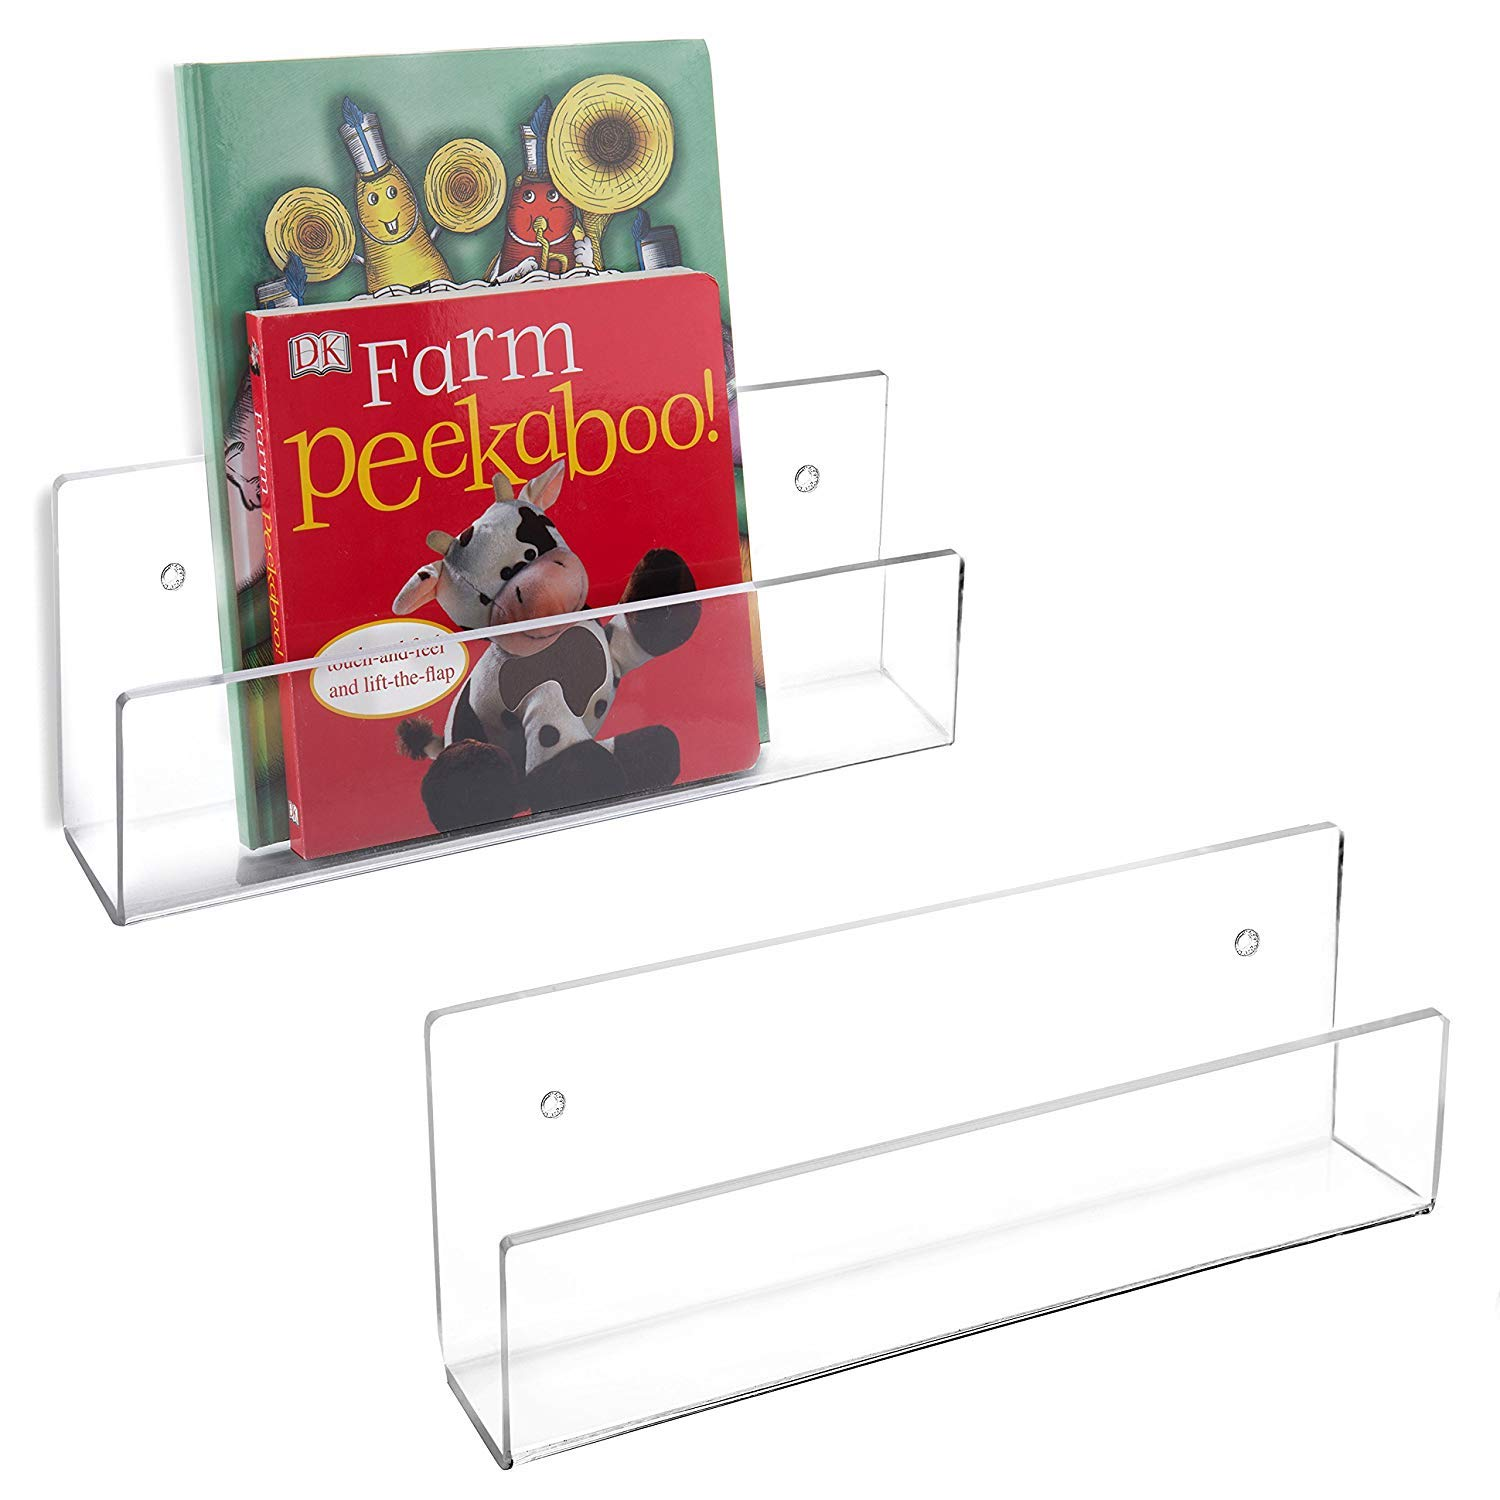 68911 Wall Mounted Clear Acrylic Magazine Brochure Display Holder Rack Set Of 2 Wallmounted Magaizne Bookstand Folders Rack Bookshelf Hanging Literature Hardware Racks Travel Motorhome Organizational